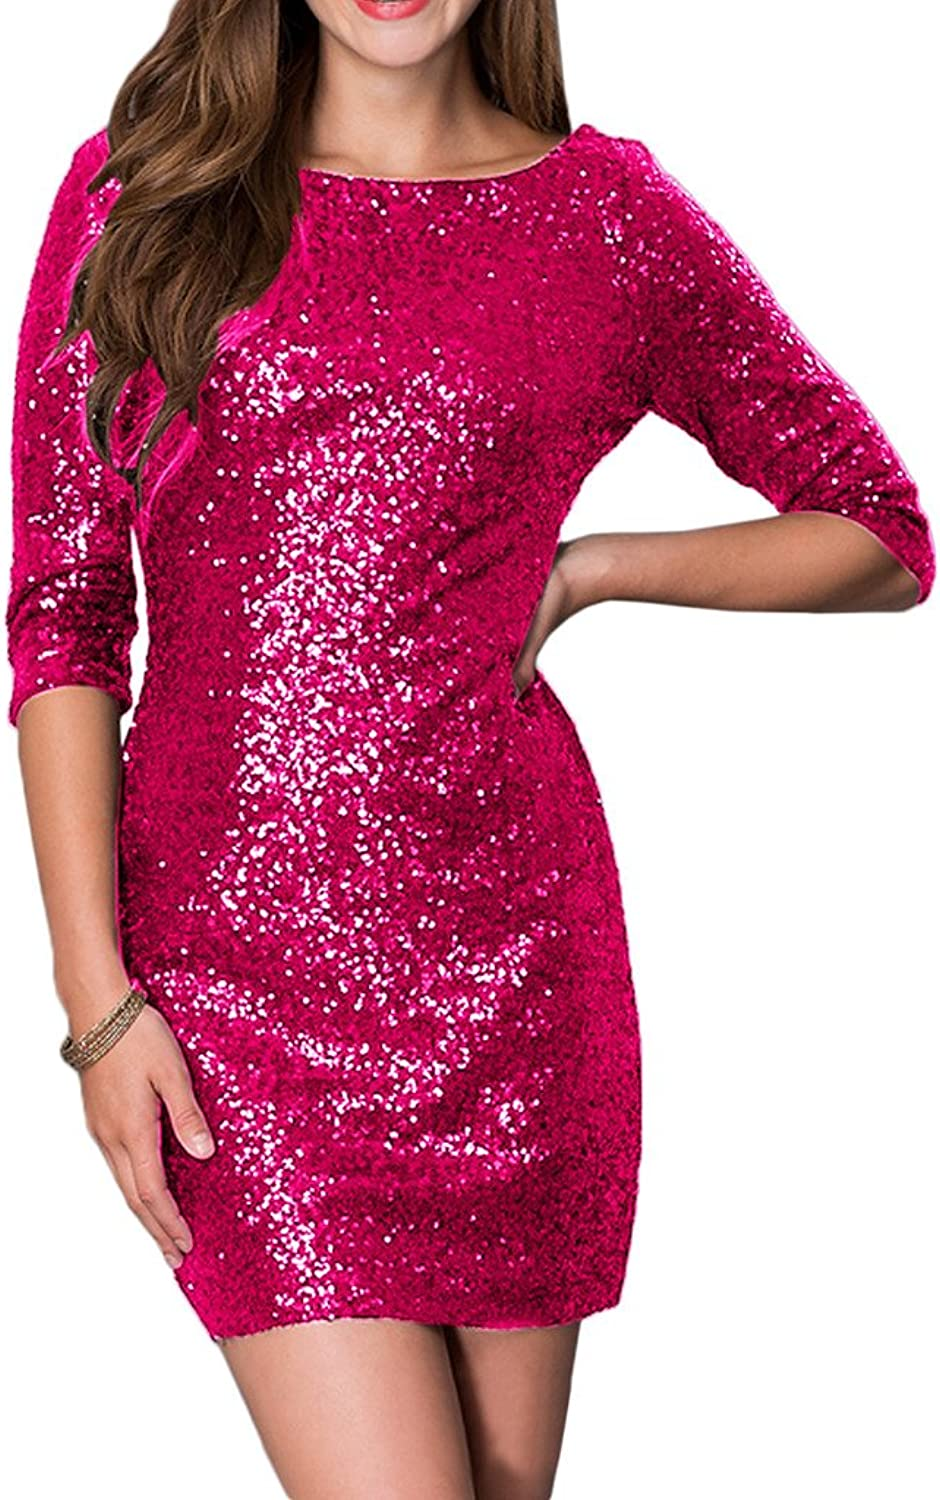 Avril Dress Sexy Sequins Sheath Mini Cocktail Prom Dress Scoop Half Sleeves